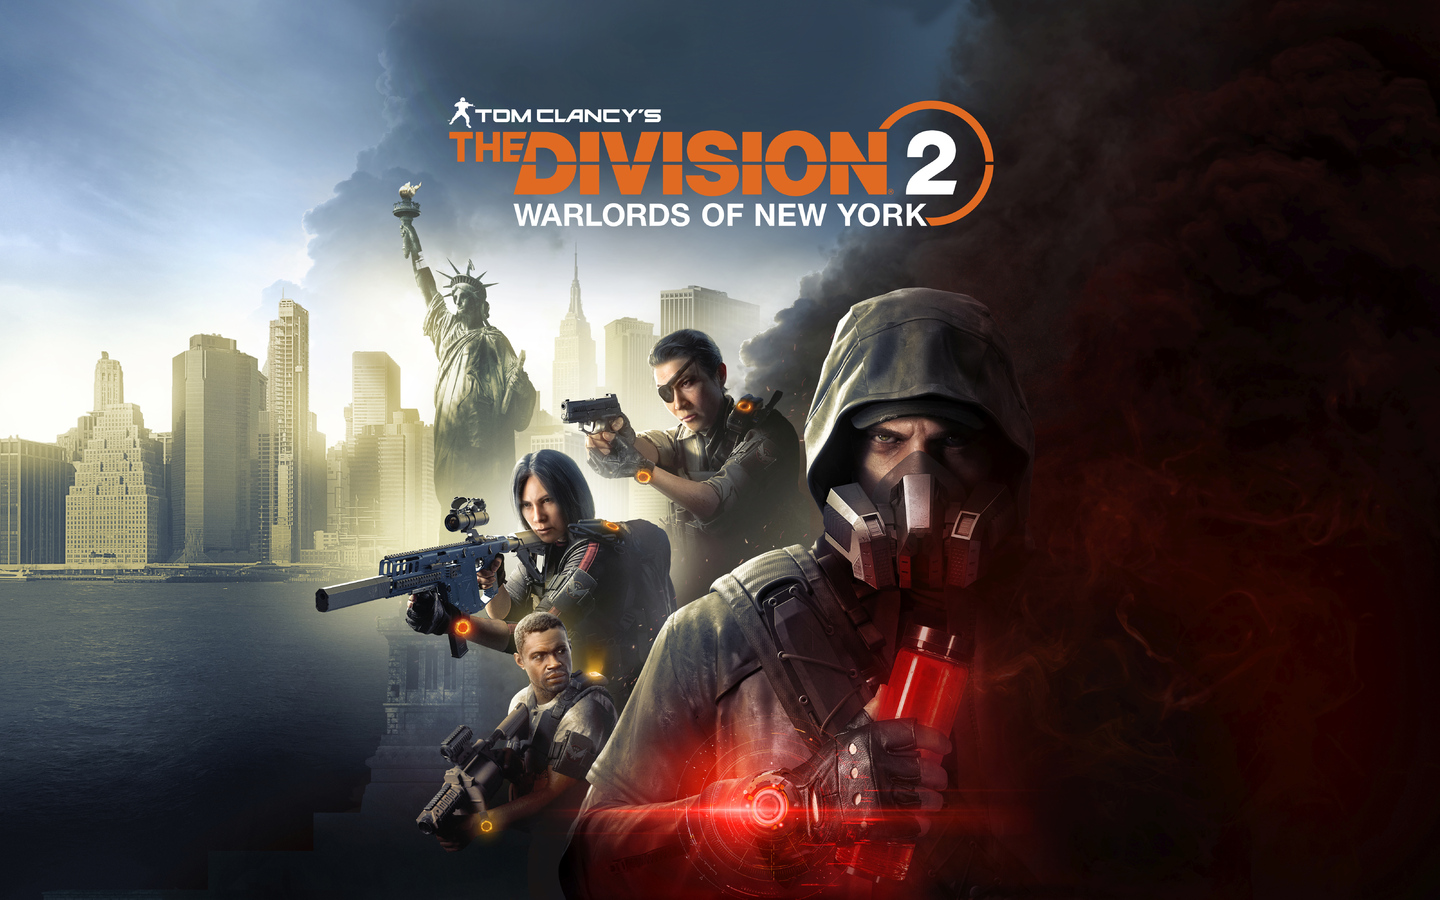 1440x900 The Division 2 Warlords Of New York 2020 1440x900